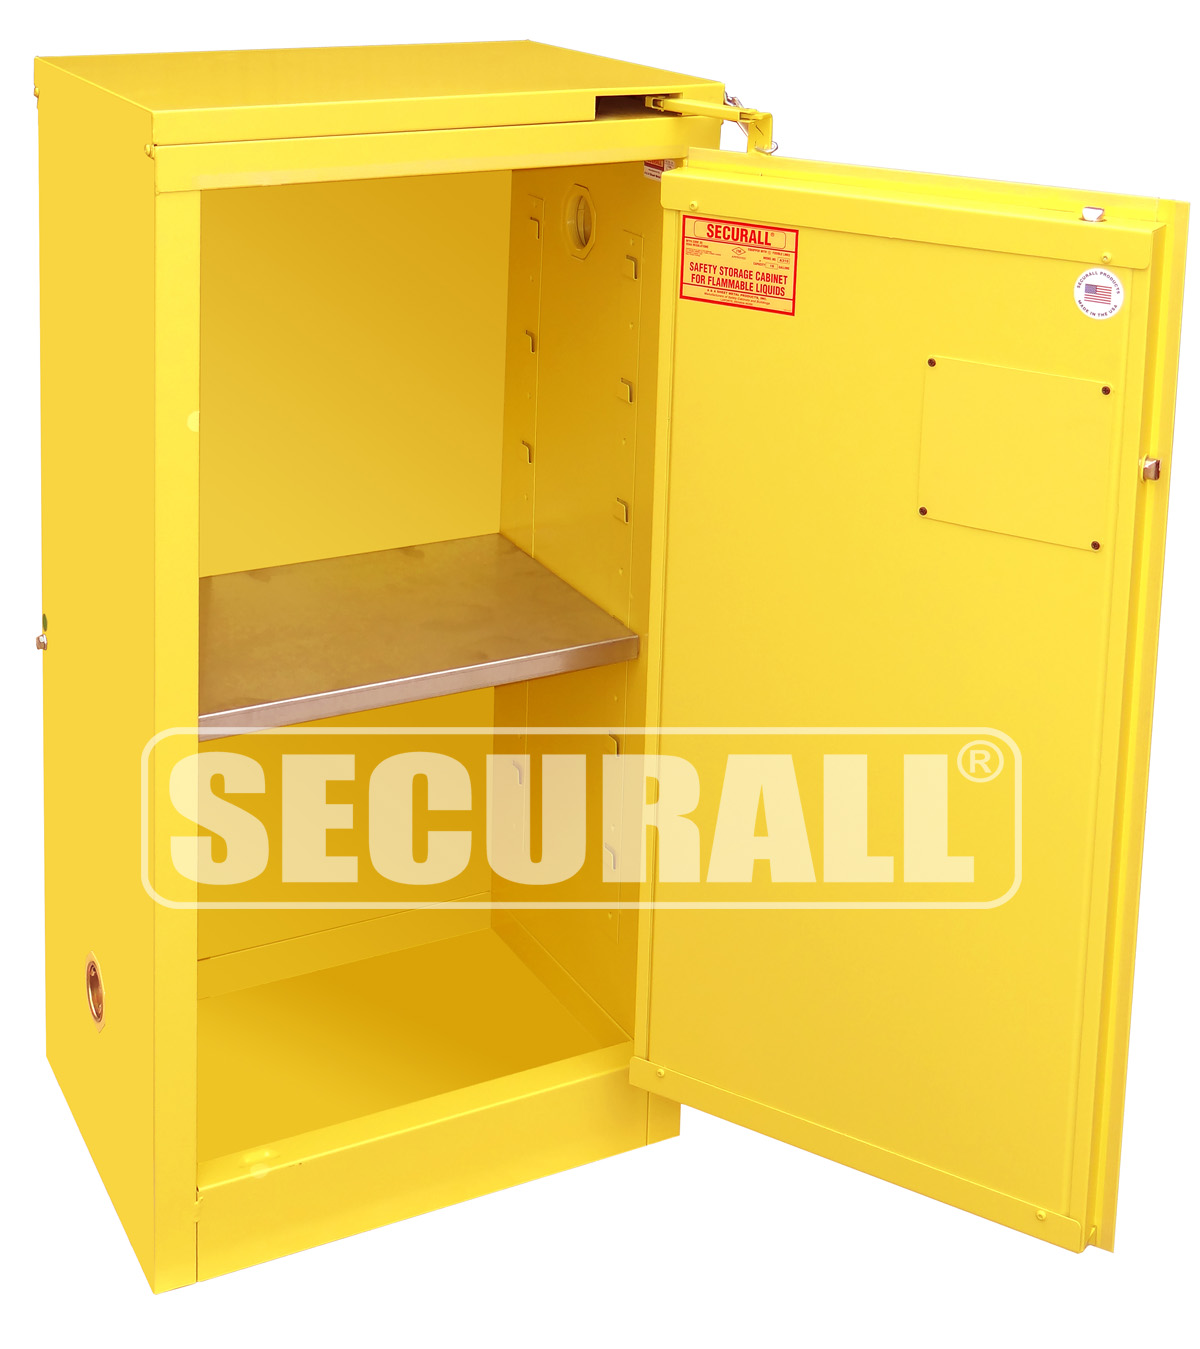 SECURALL: Flammable Storage, Flammable Cabinet, Flammable